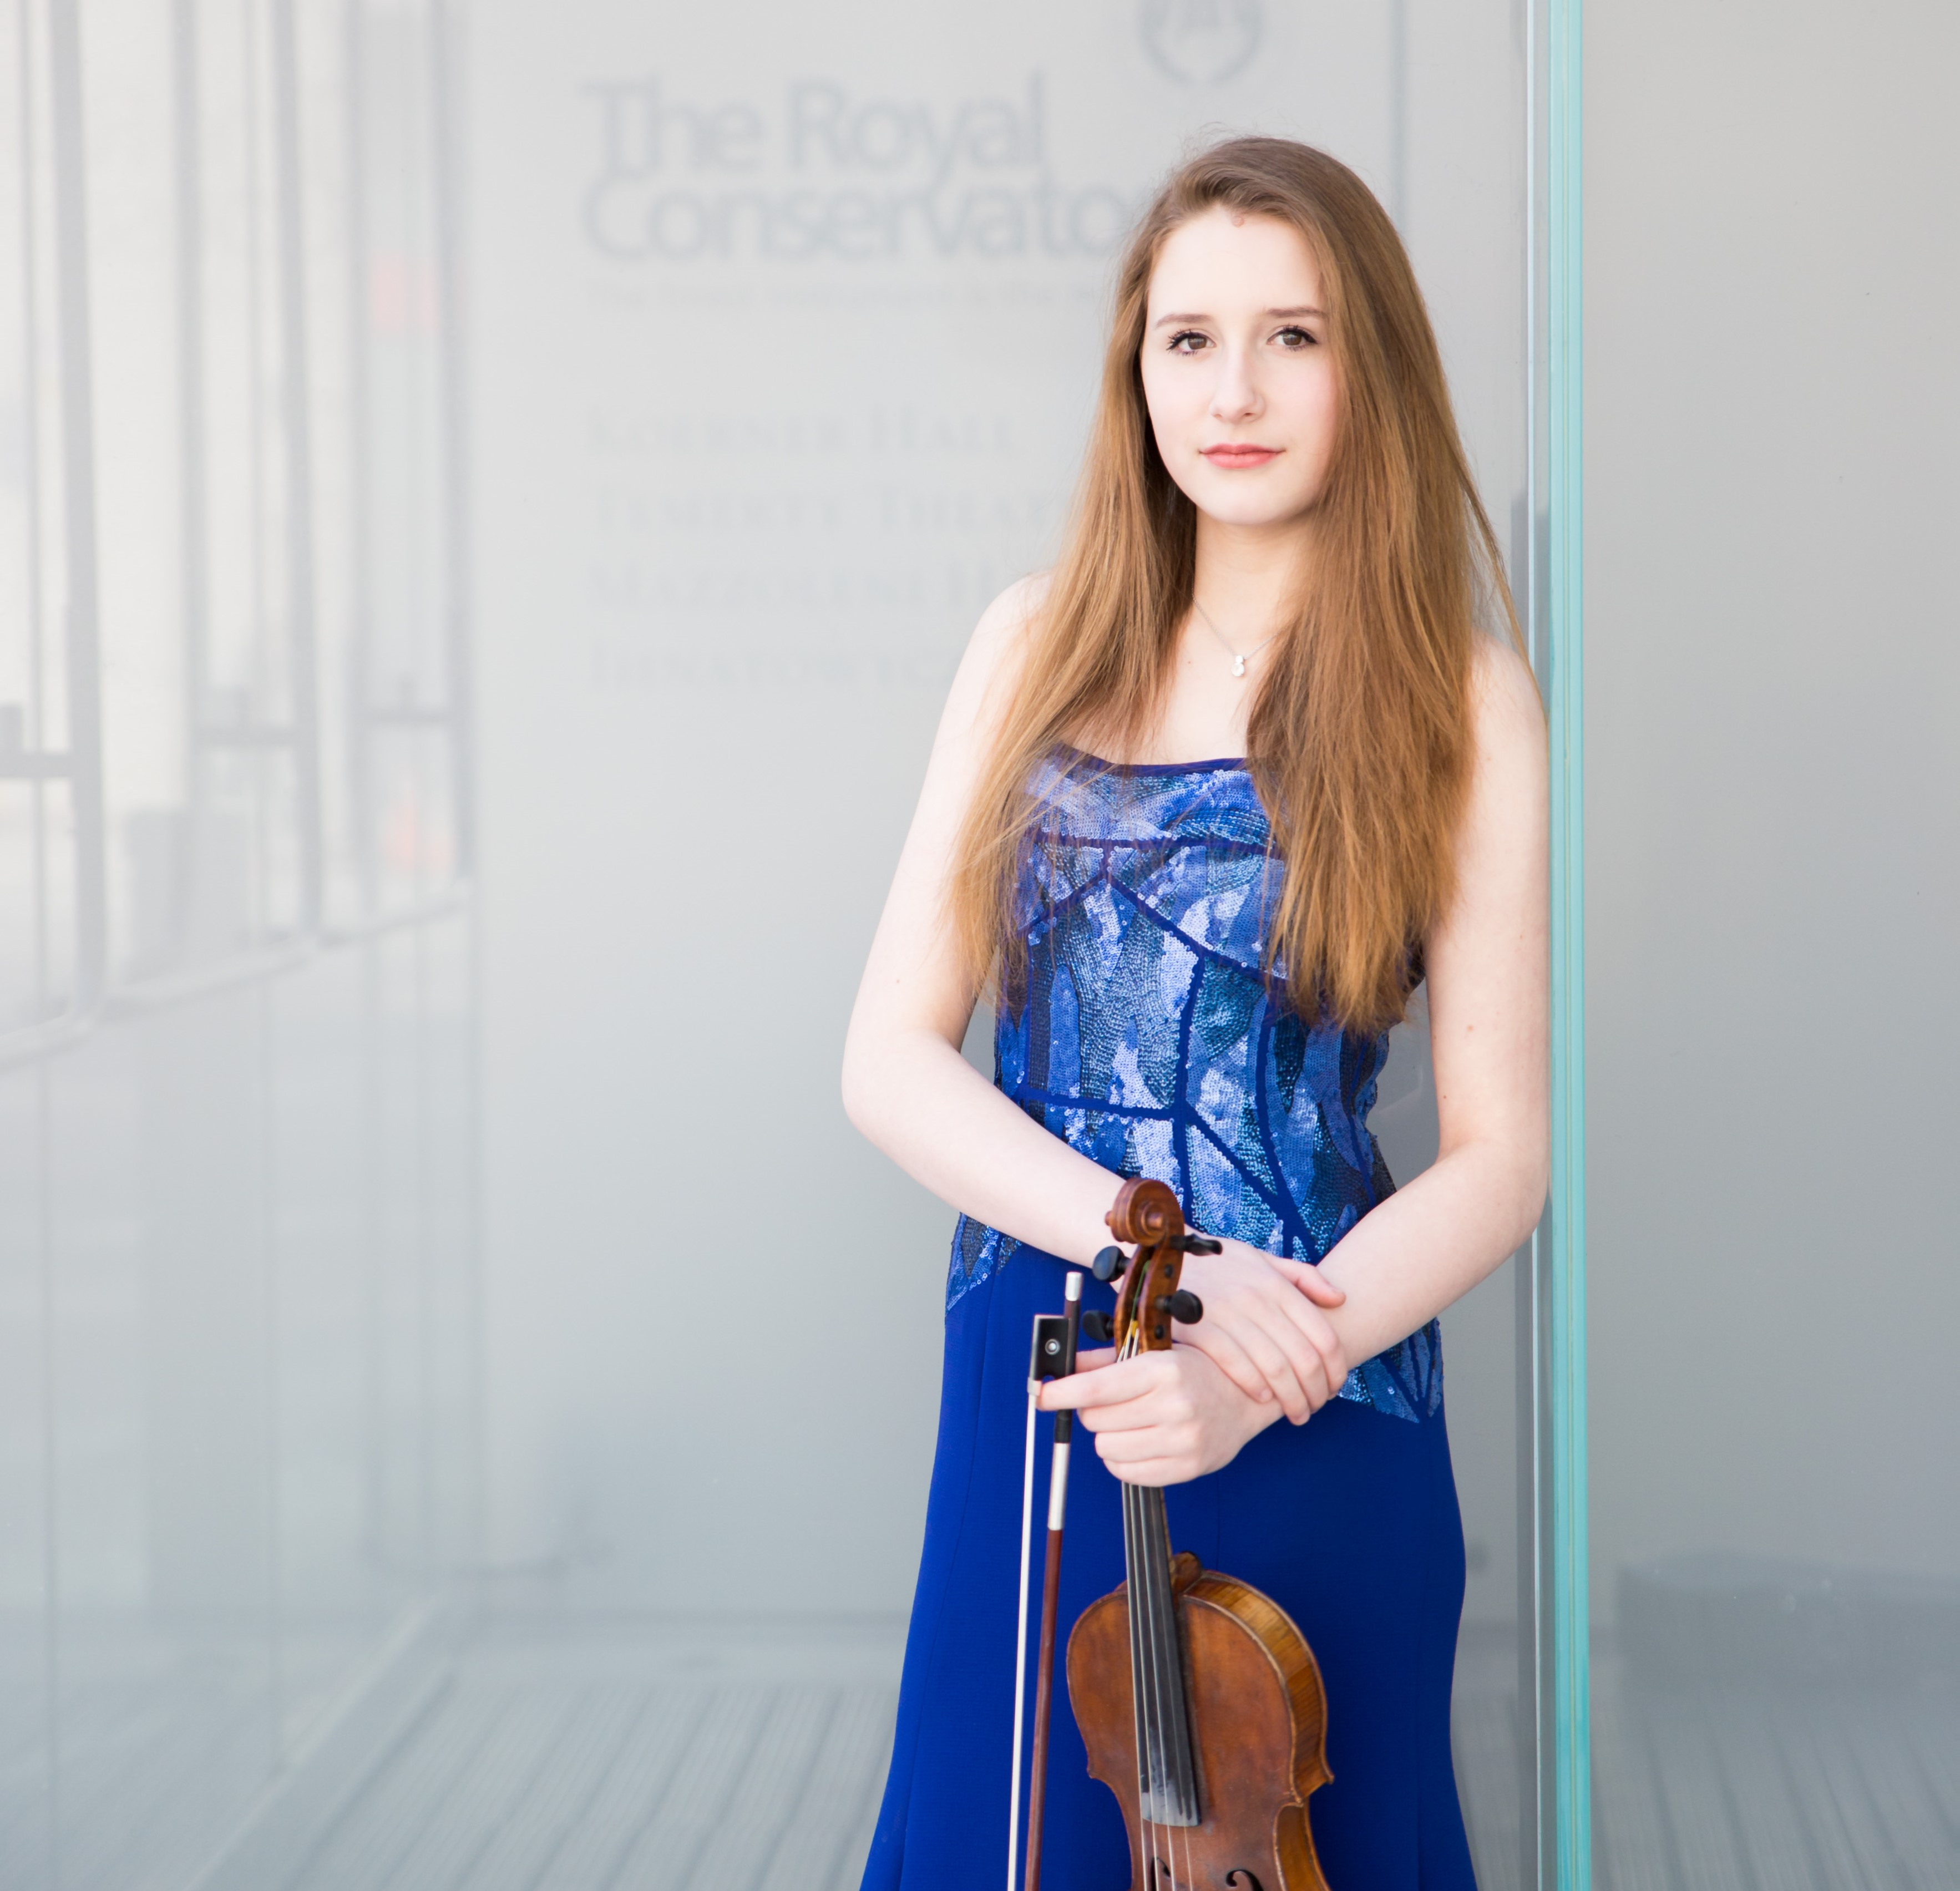 Violin Virtuosity from the Phil and Eli Taylor Performance Academy for Young Artists